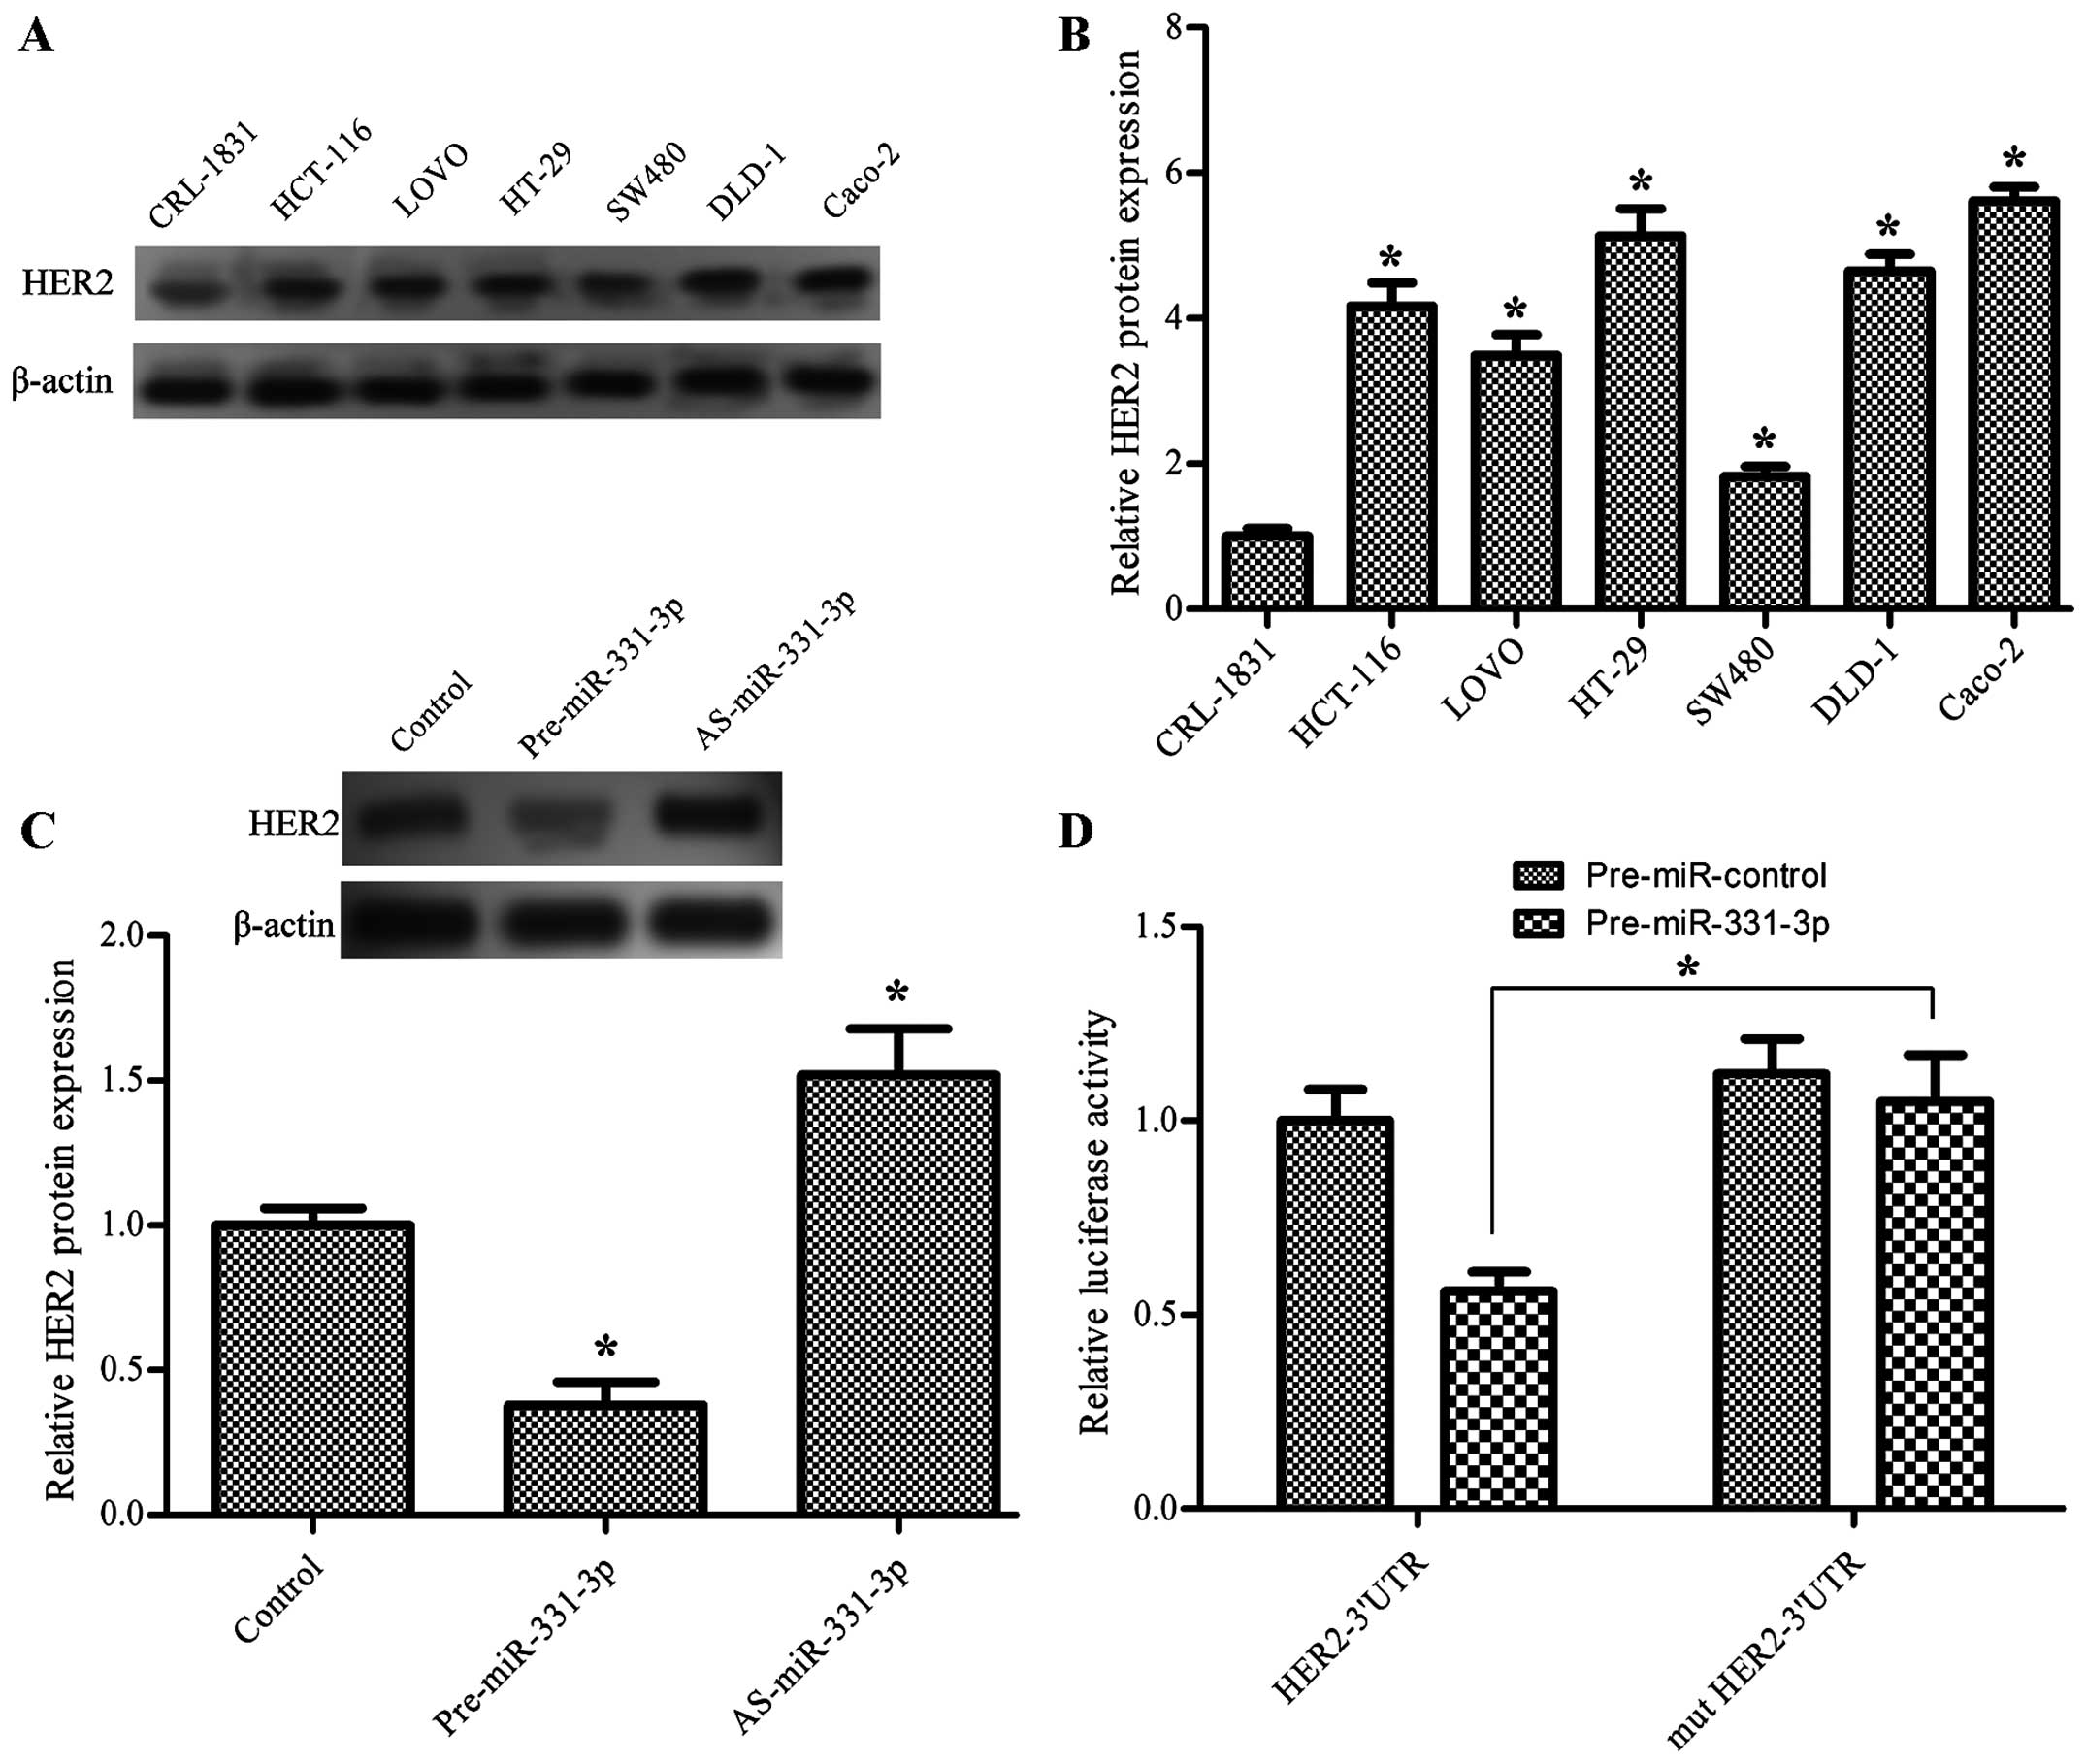 Mir 331 3p Inhibits Proliferation And Promotes Apoptosis By Targeting Her2 Through The Pi3k Akt And Erk1 2 Pathways In Colorectal Cancer